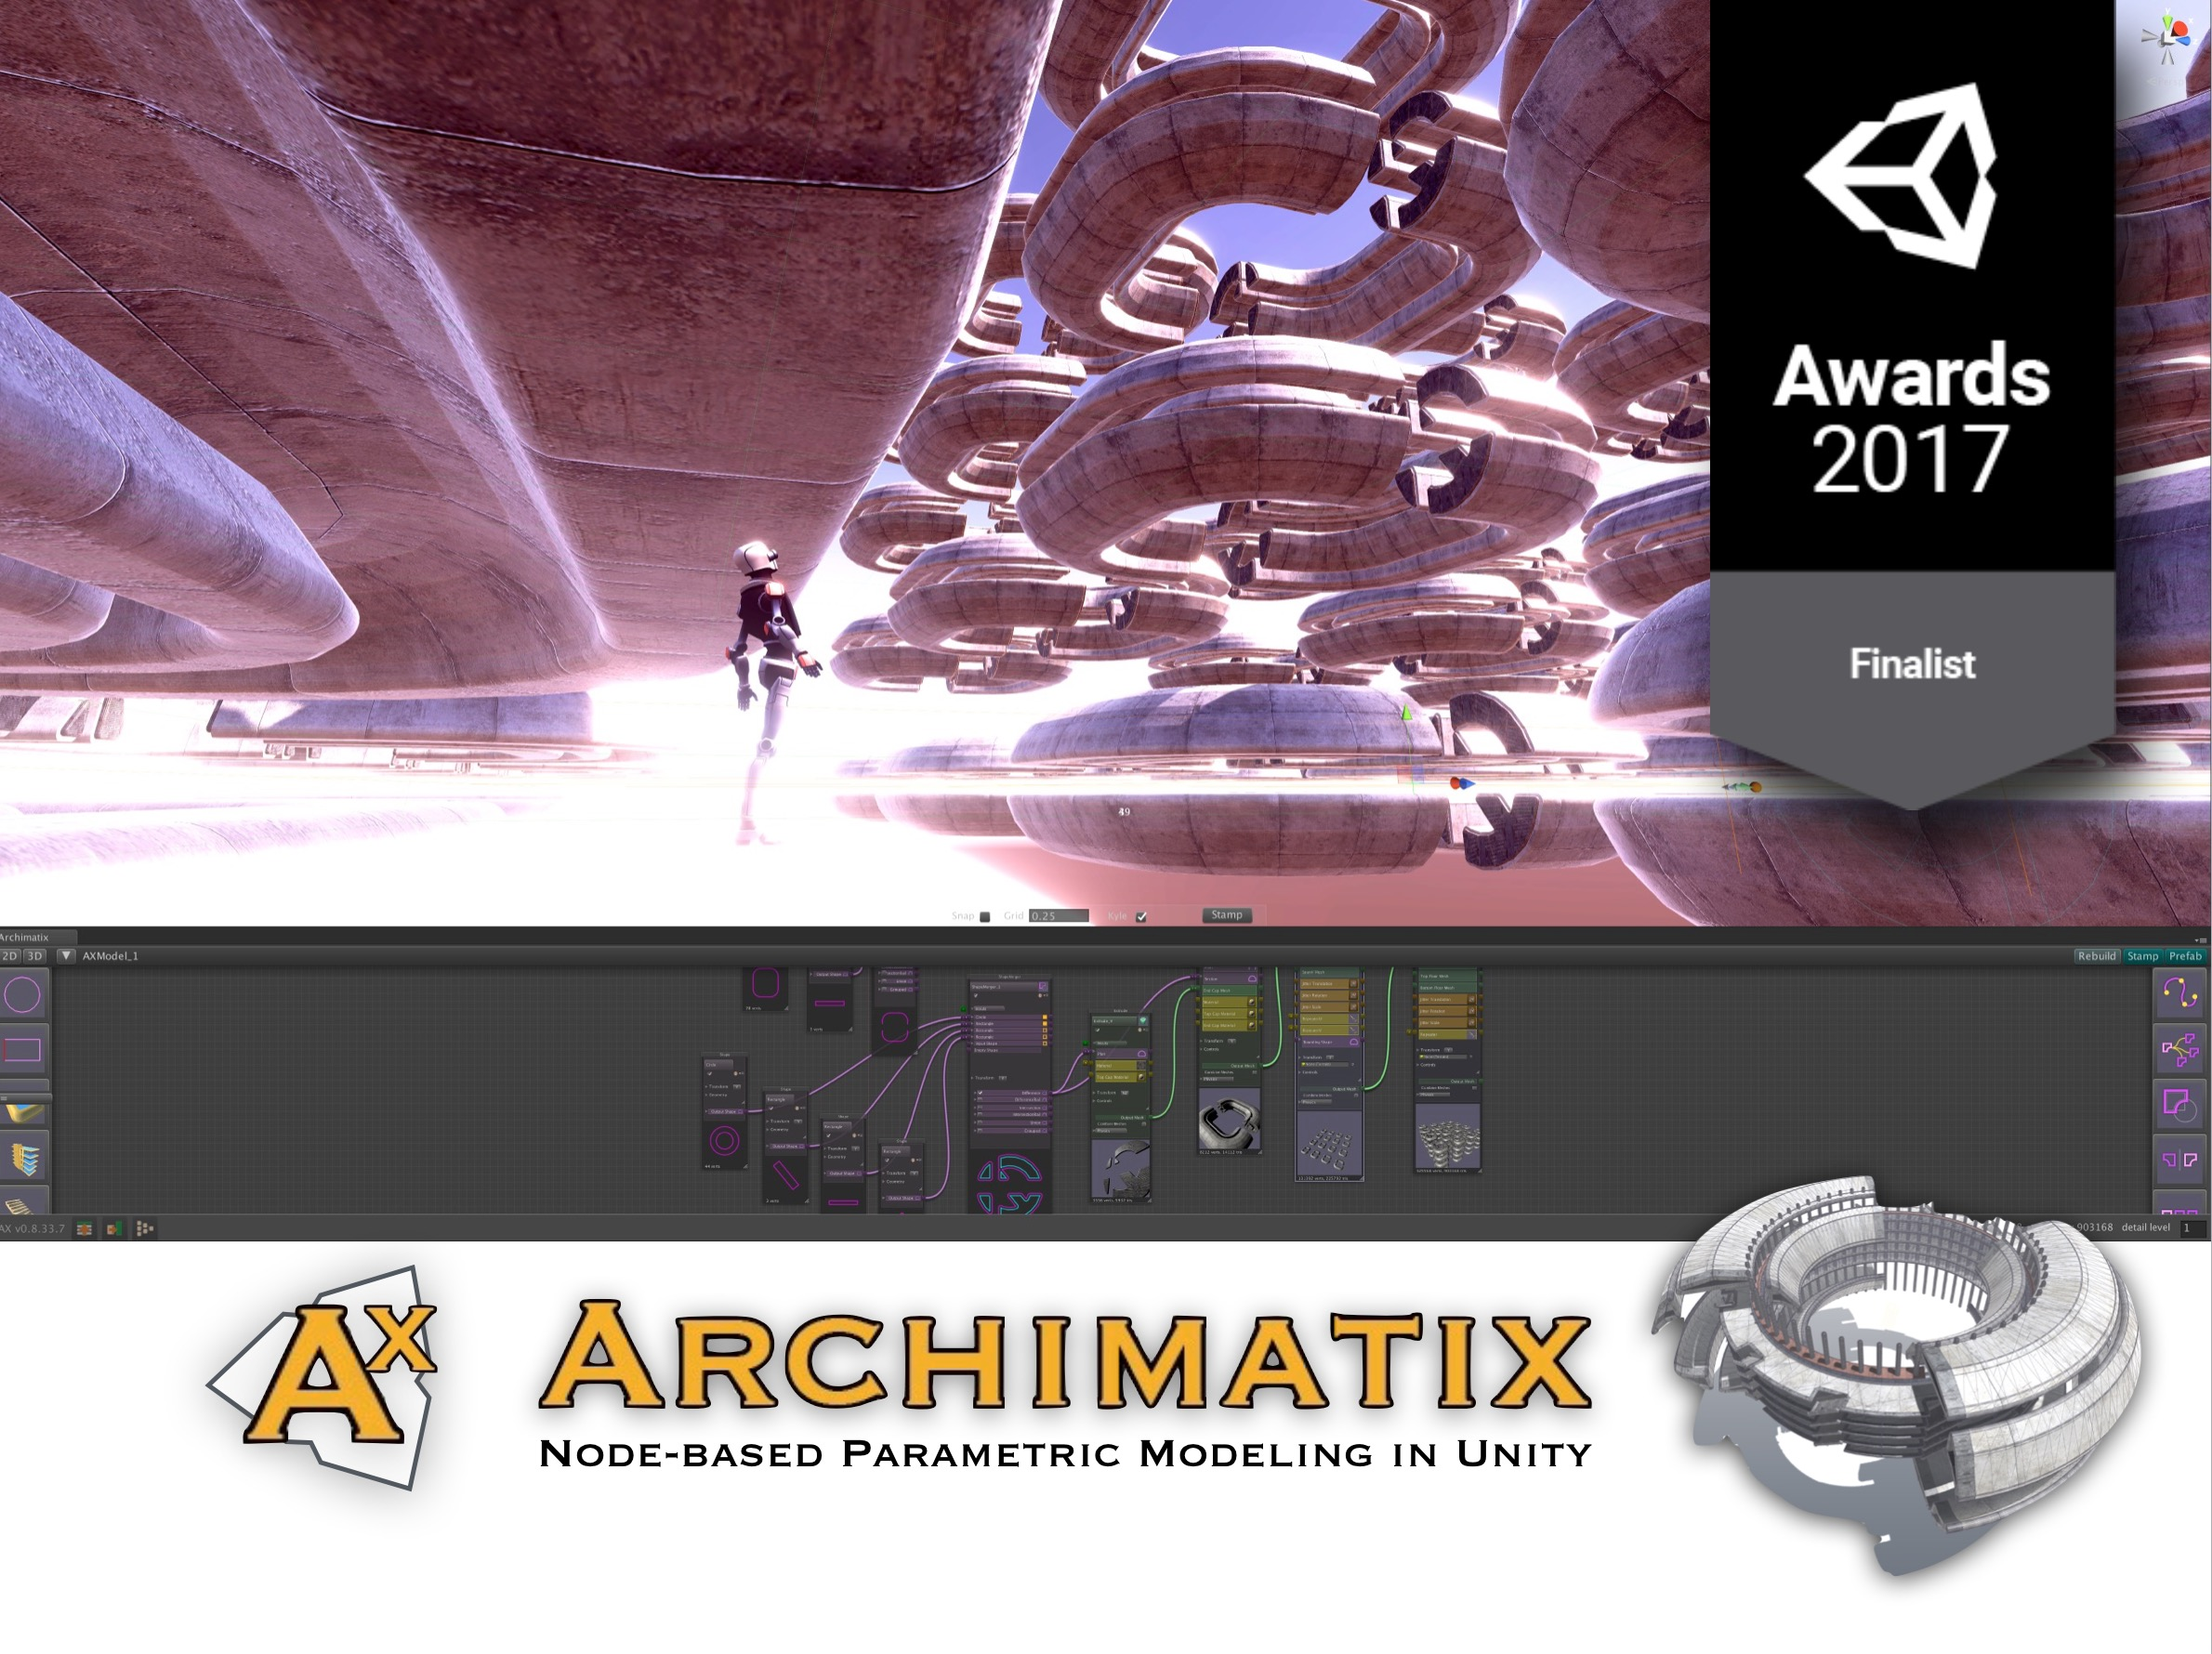 What is Archimatix? -